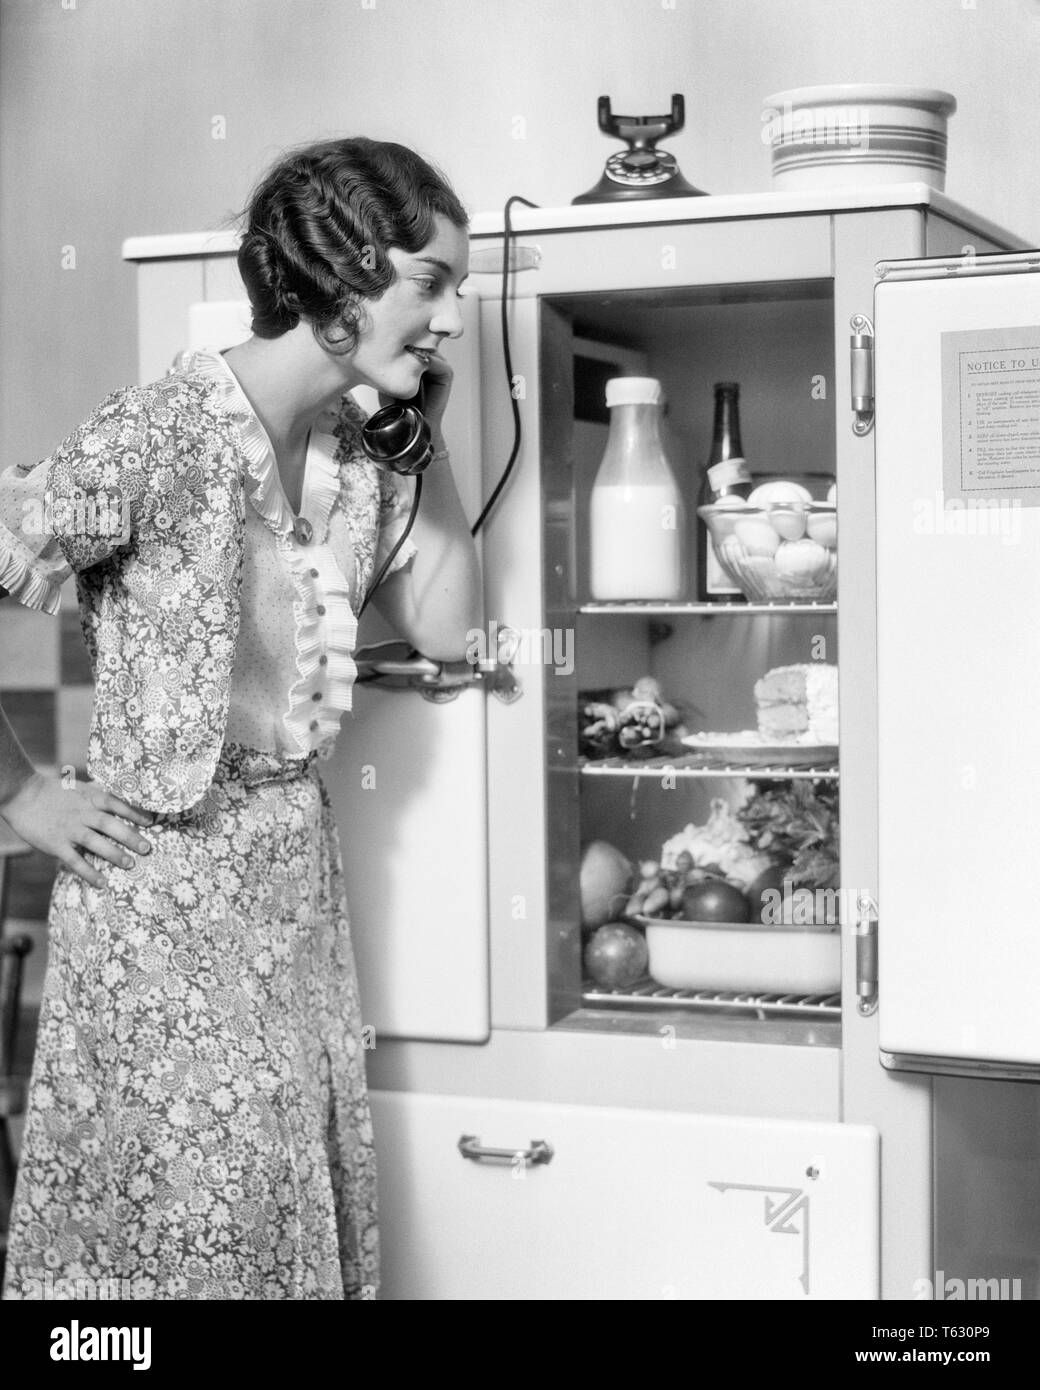 1920s SMILING WOMAN SPEAKING ON TELEPHONE LOOKING INTO THE KITCHEN ICEBOX REFRIGERATOR PLACING ORDER WITH GROCER - t2987 HAR001 HARS LIFESTYLE FEMALES HOME LIFE COMMUNICATING COPY SPACE HALF-LENGTH LADIES PERSONS ORDER B&W BRUNETTE GOALS HOMEMAKER FRESH HOMEMAKERS CHEERFUL DISCOVERY STYLES CUSTOMER SERVICE GROCER HAIRSTYLE HOUSEWIVES PHONES SMILES FINGER WAVES TELEPHONES JOYFUL PRODUCE STYLING STYLISH ICEBOX COOPERATION FASHIONS MARCEL ORDERING YOUNG ADULT WOMAN BLACK AND WHITE CAUCASIAN ETHNICITY HAR001 OLD FASHIONED PLACING - Stock Image